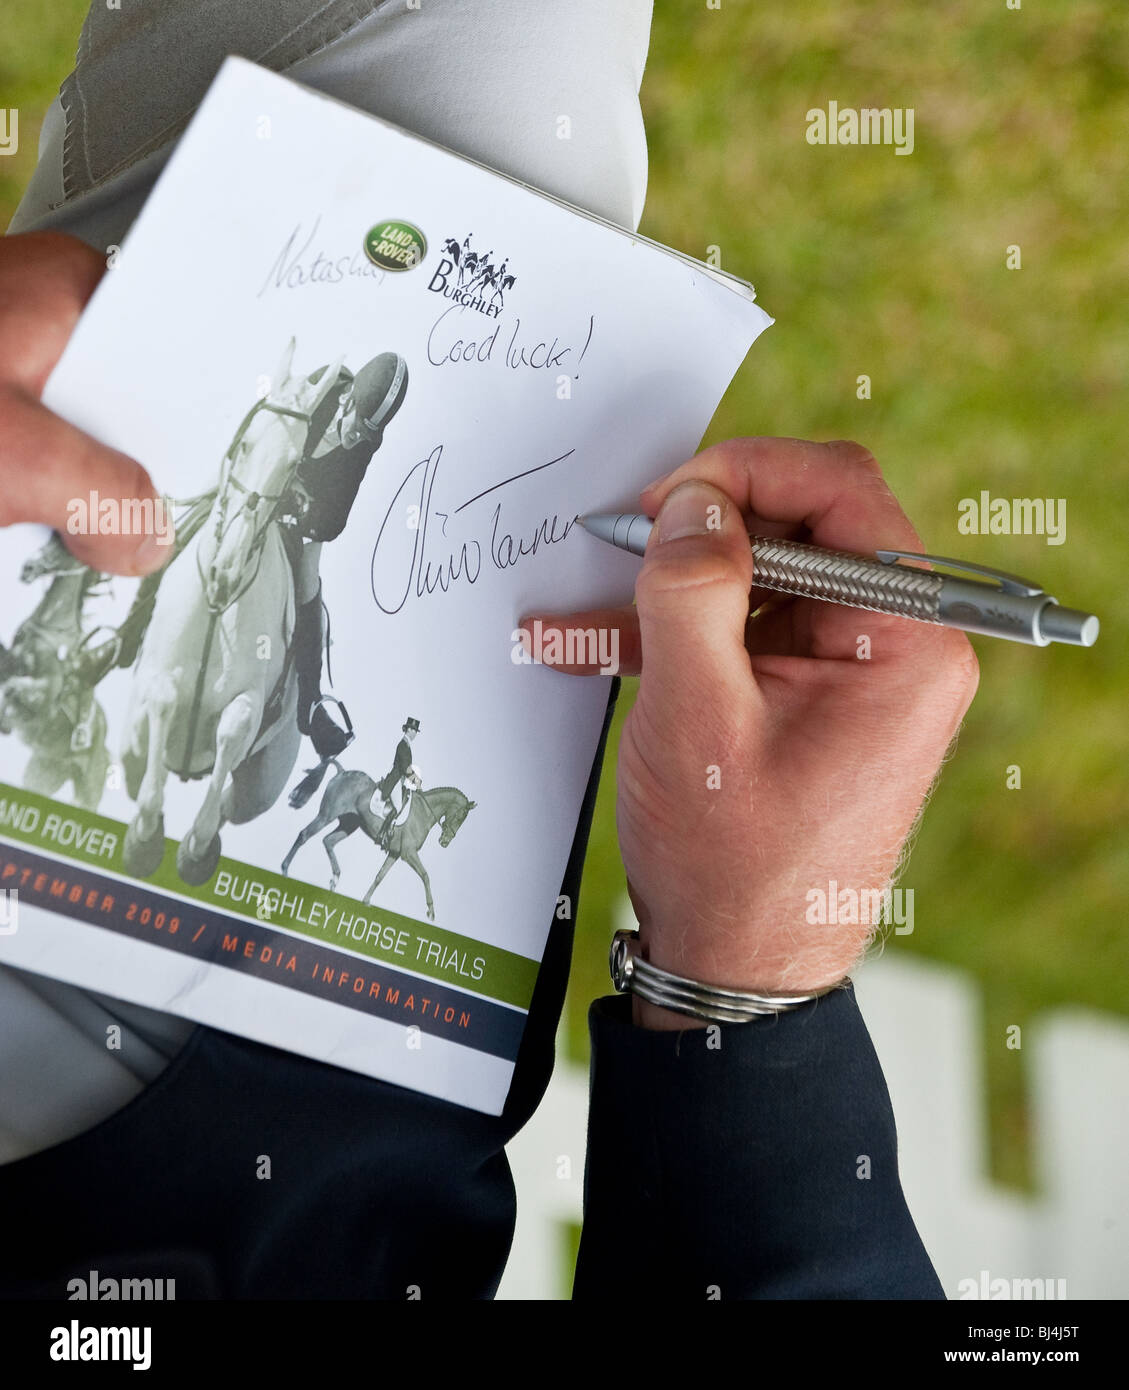 Oliver Townend Signing Autographs after his win at the Landrover Burghley Horse  trials - Stock Image